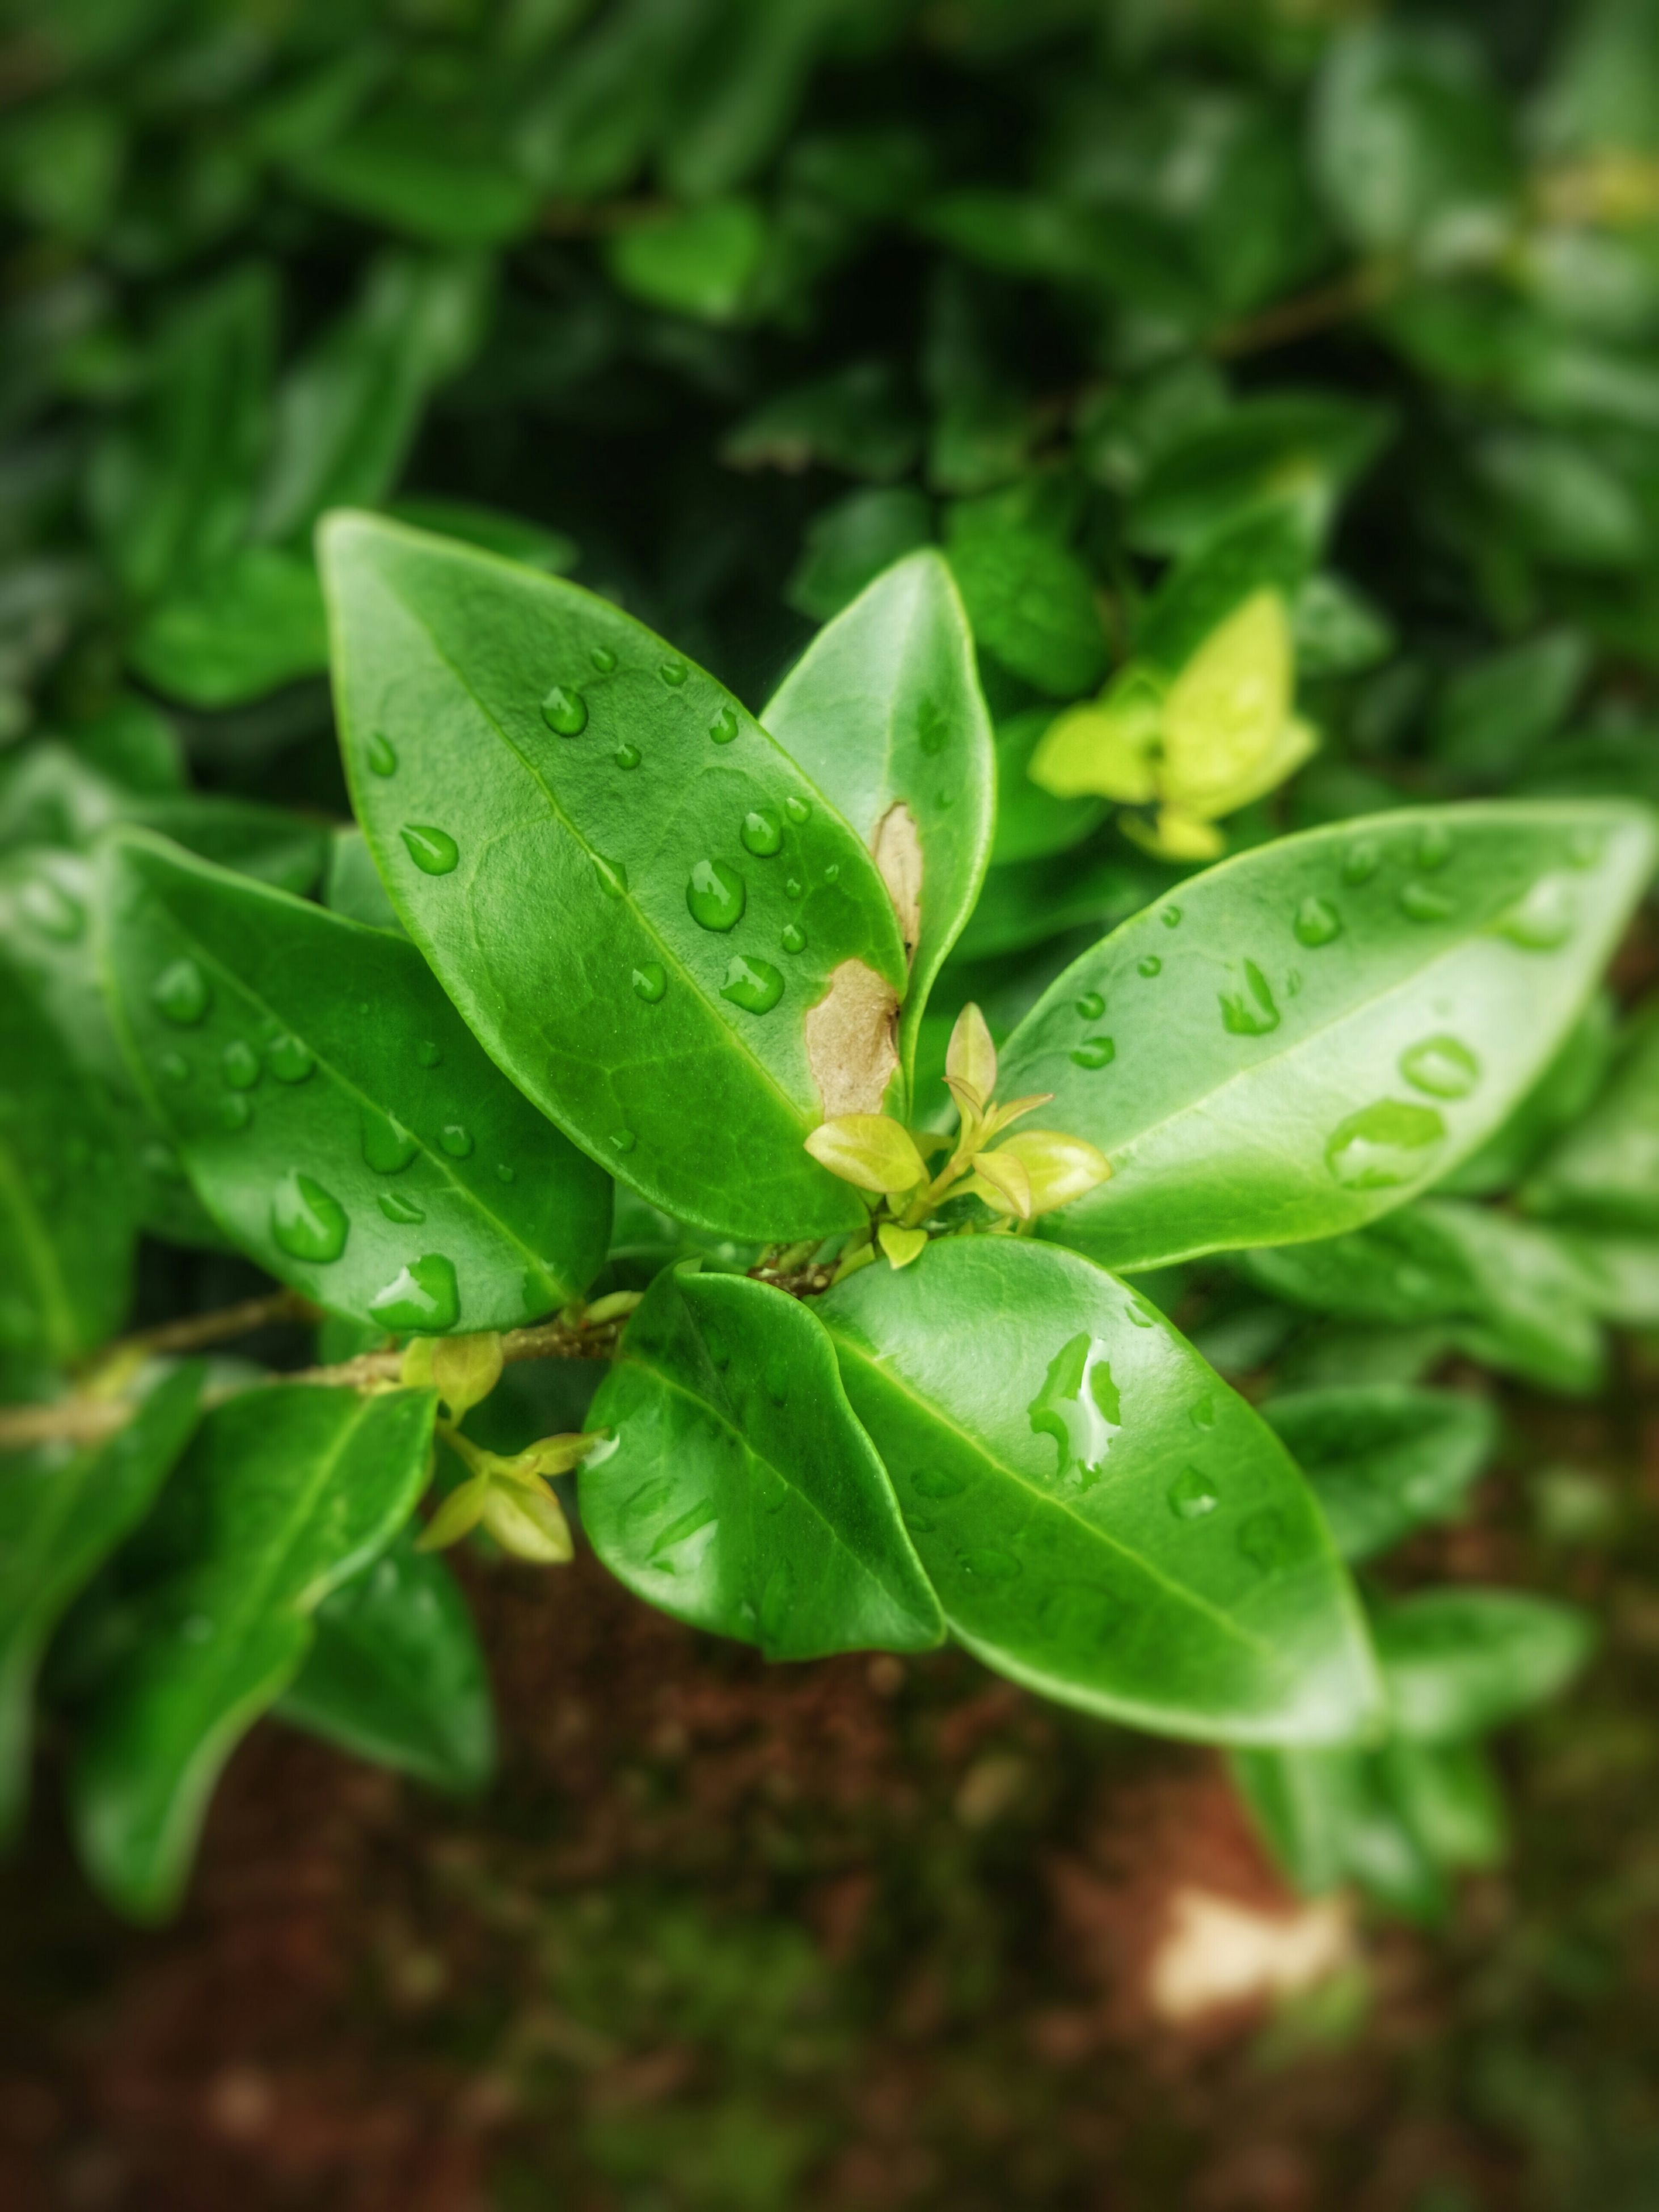 leaf, green color, growth, close-up, plant, drop, freshness, nature, beauty in nature, wet, fragility, focus on foreground, water, selective focus, green, day, no people, dew, outdoors, high angle view